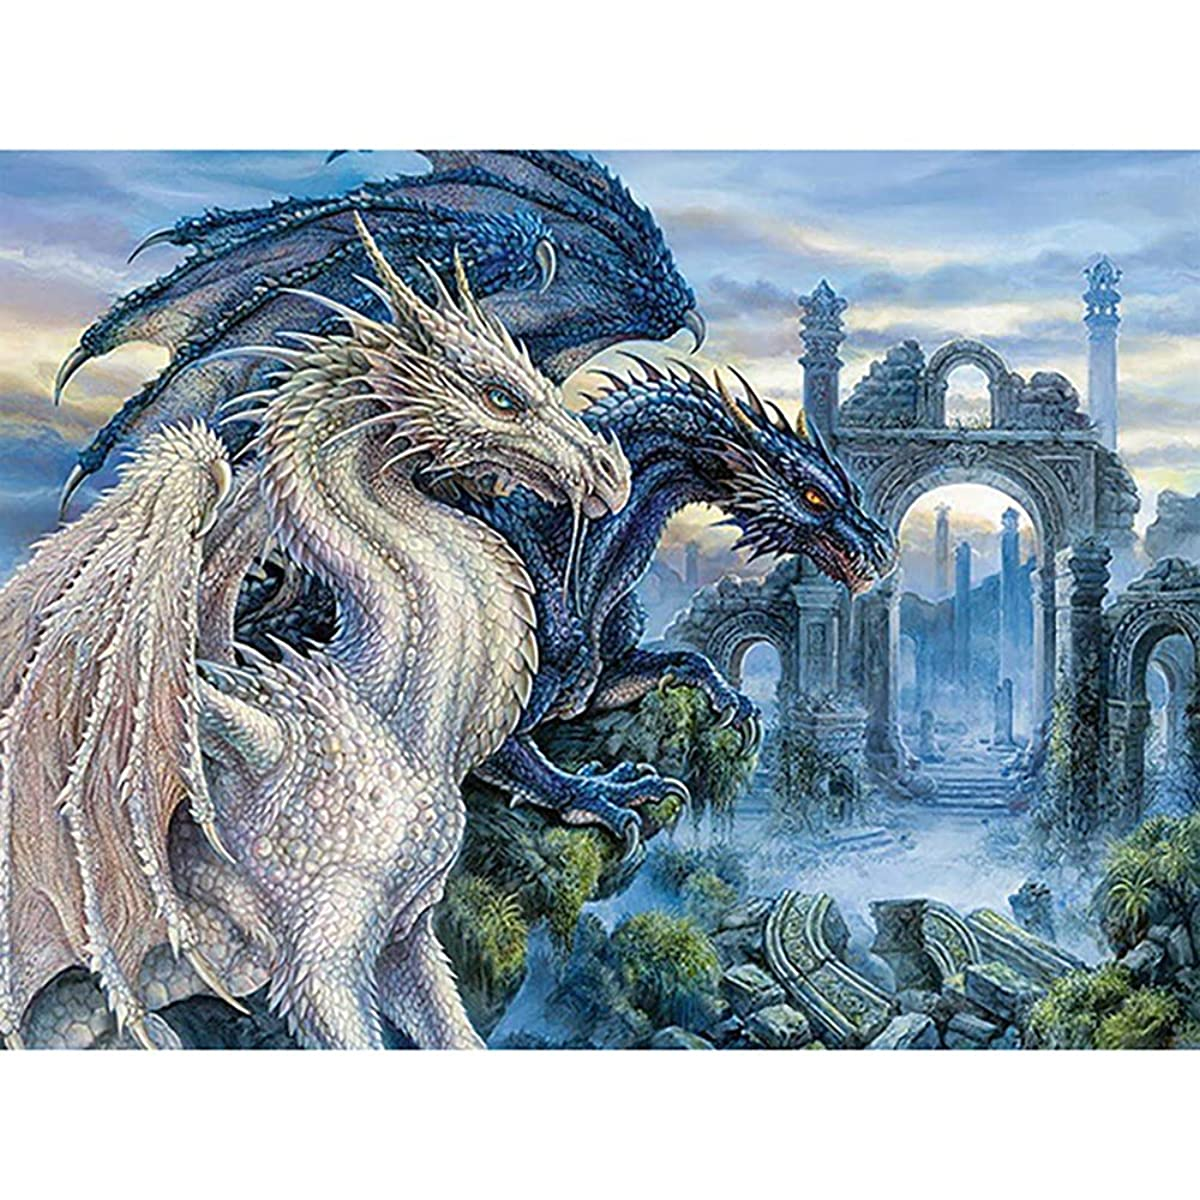 DIY 5D Diamond Painting by Number Kits, Crystal Rhinestone Embroidery Paint with Diamonds, Full Drill Canvas Art Picture for Home Wall Decor, Dragon, 13.58x16.92inch